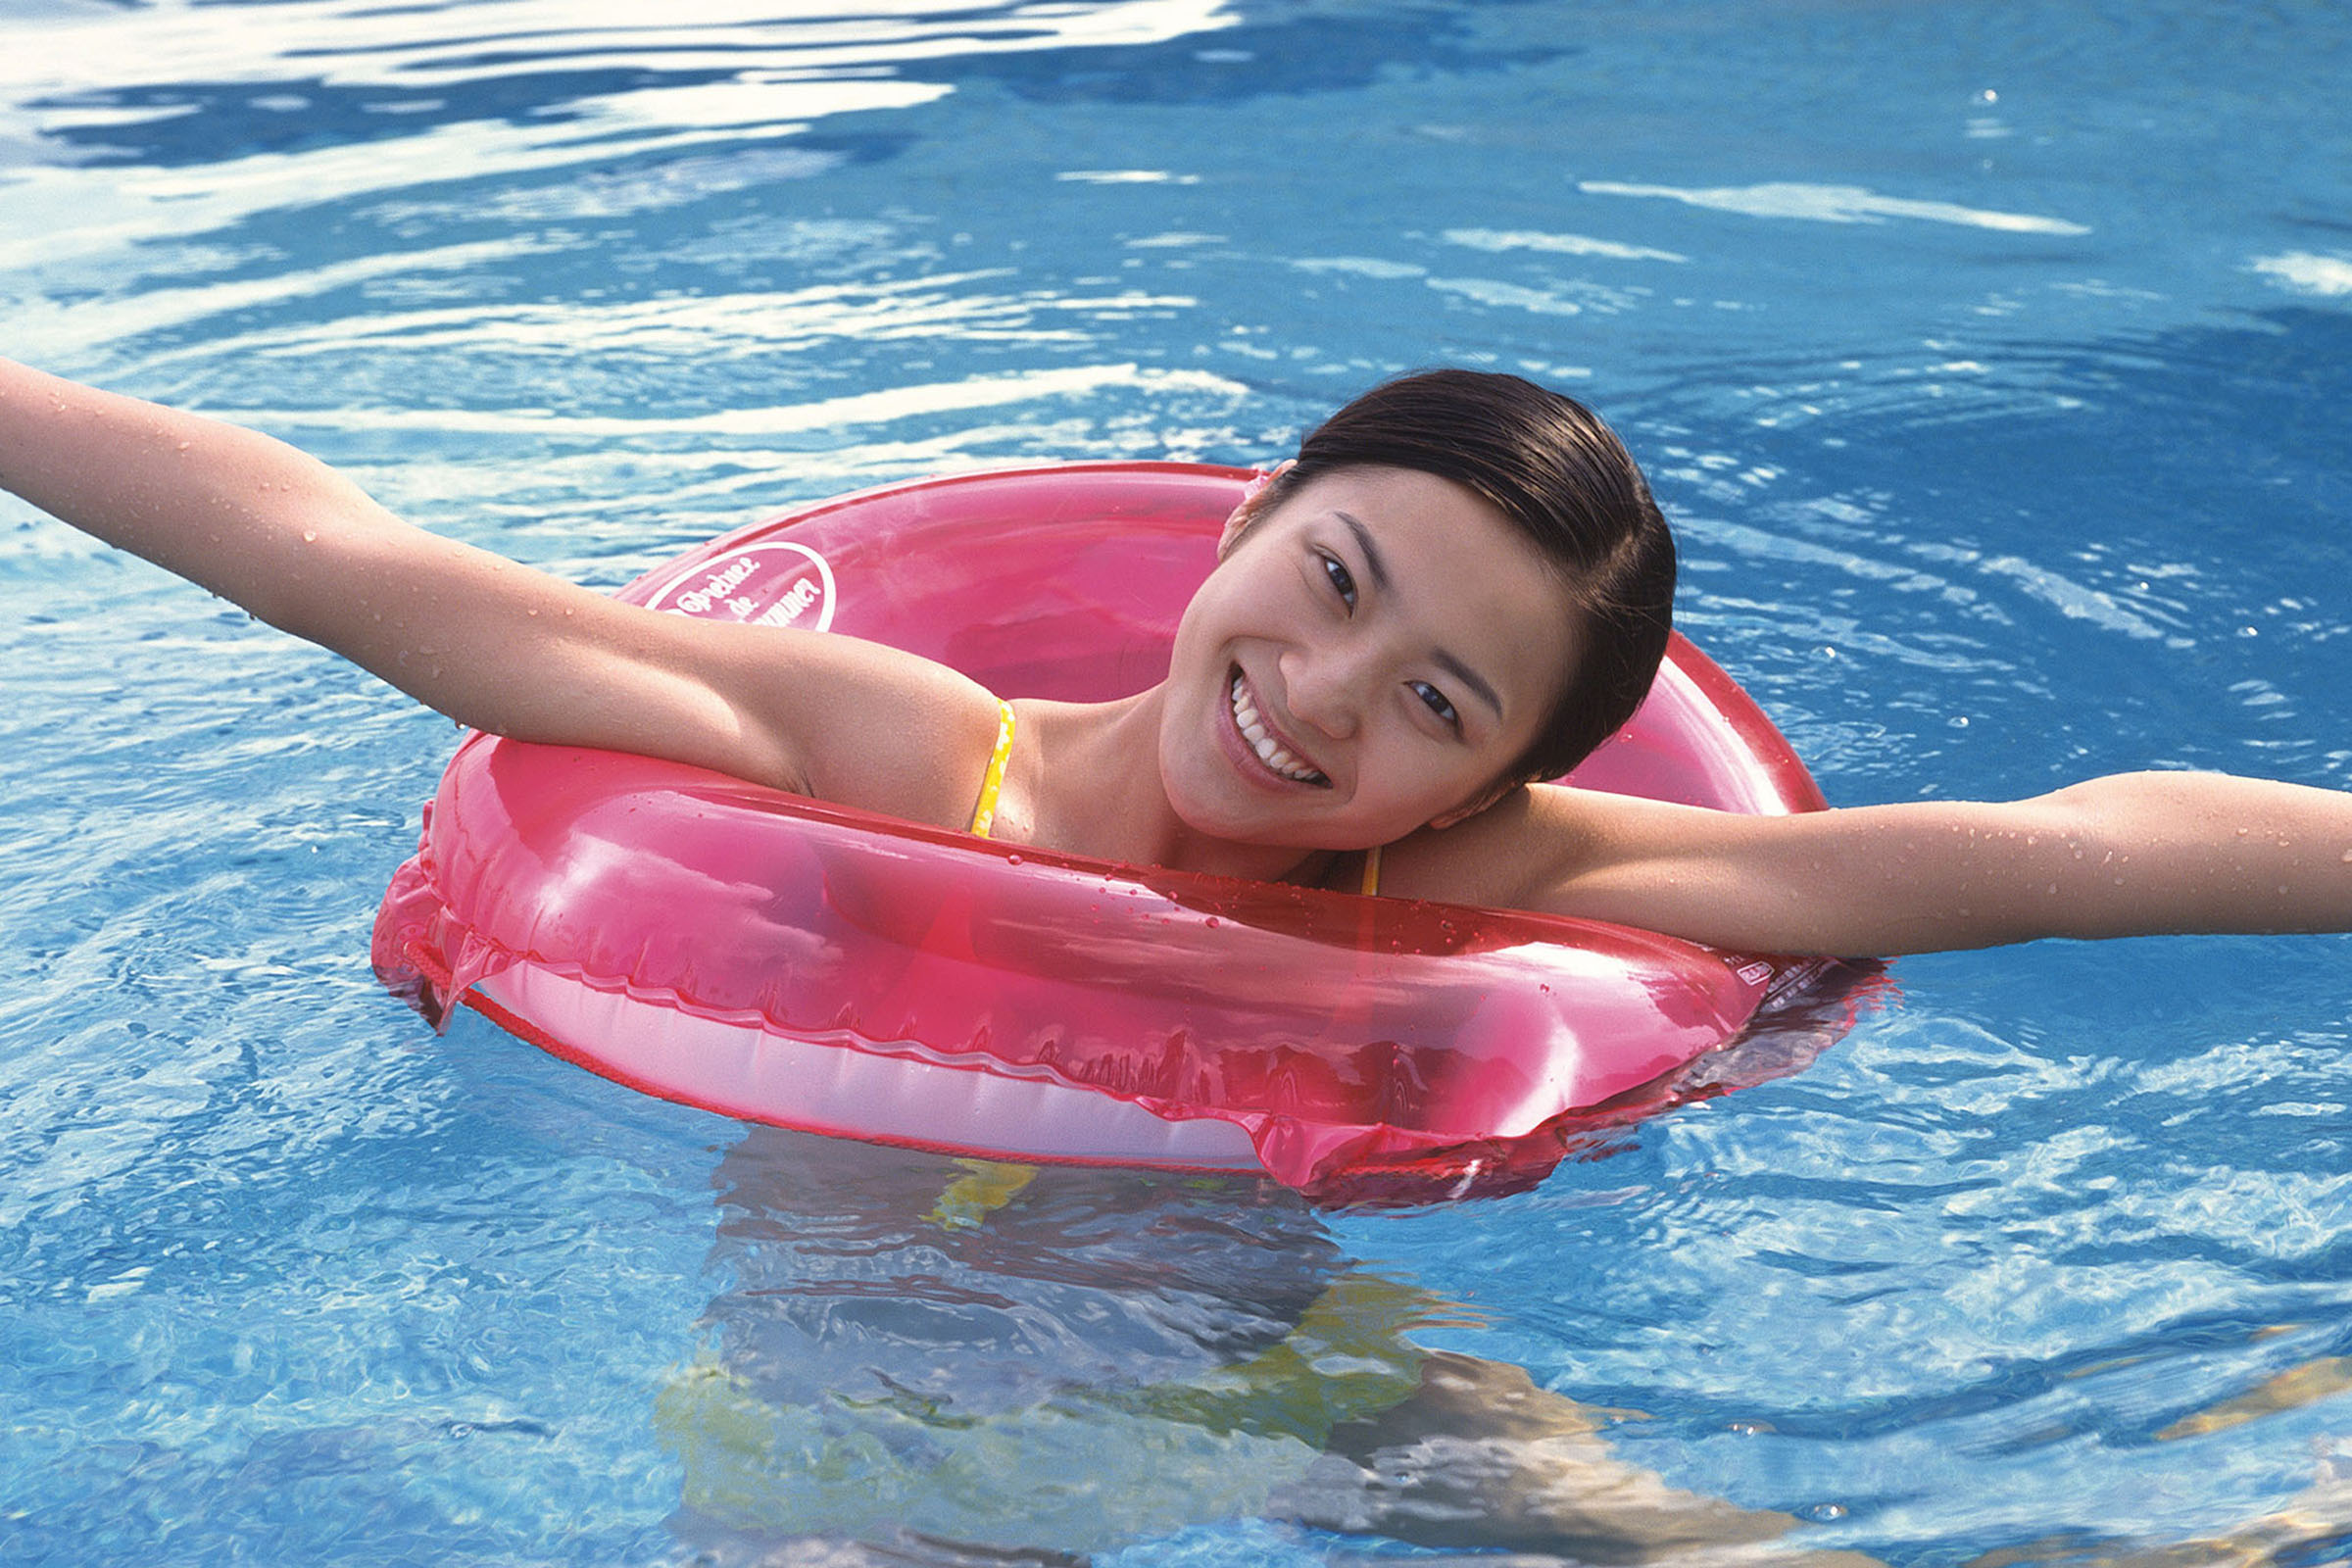 a girl in a pool of water